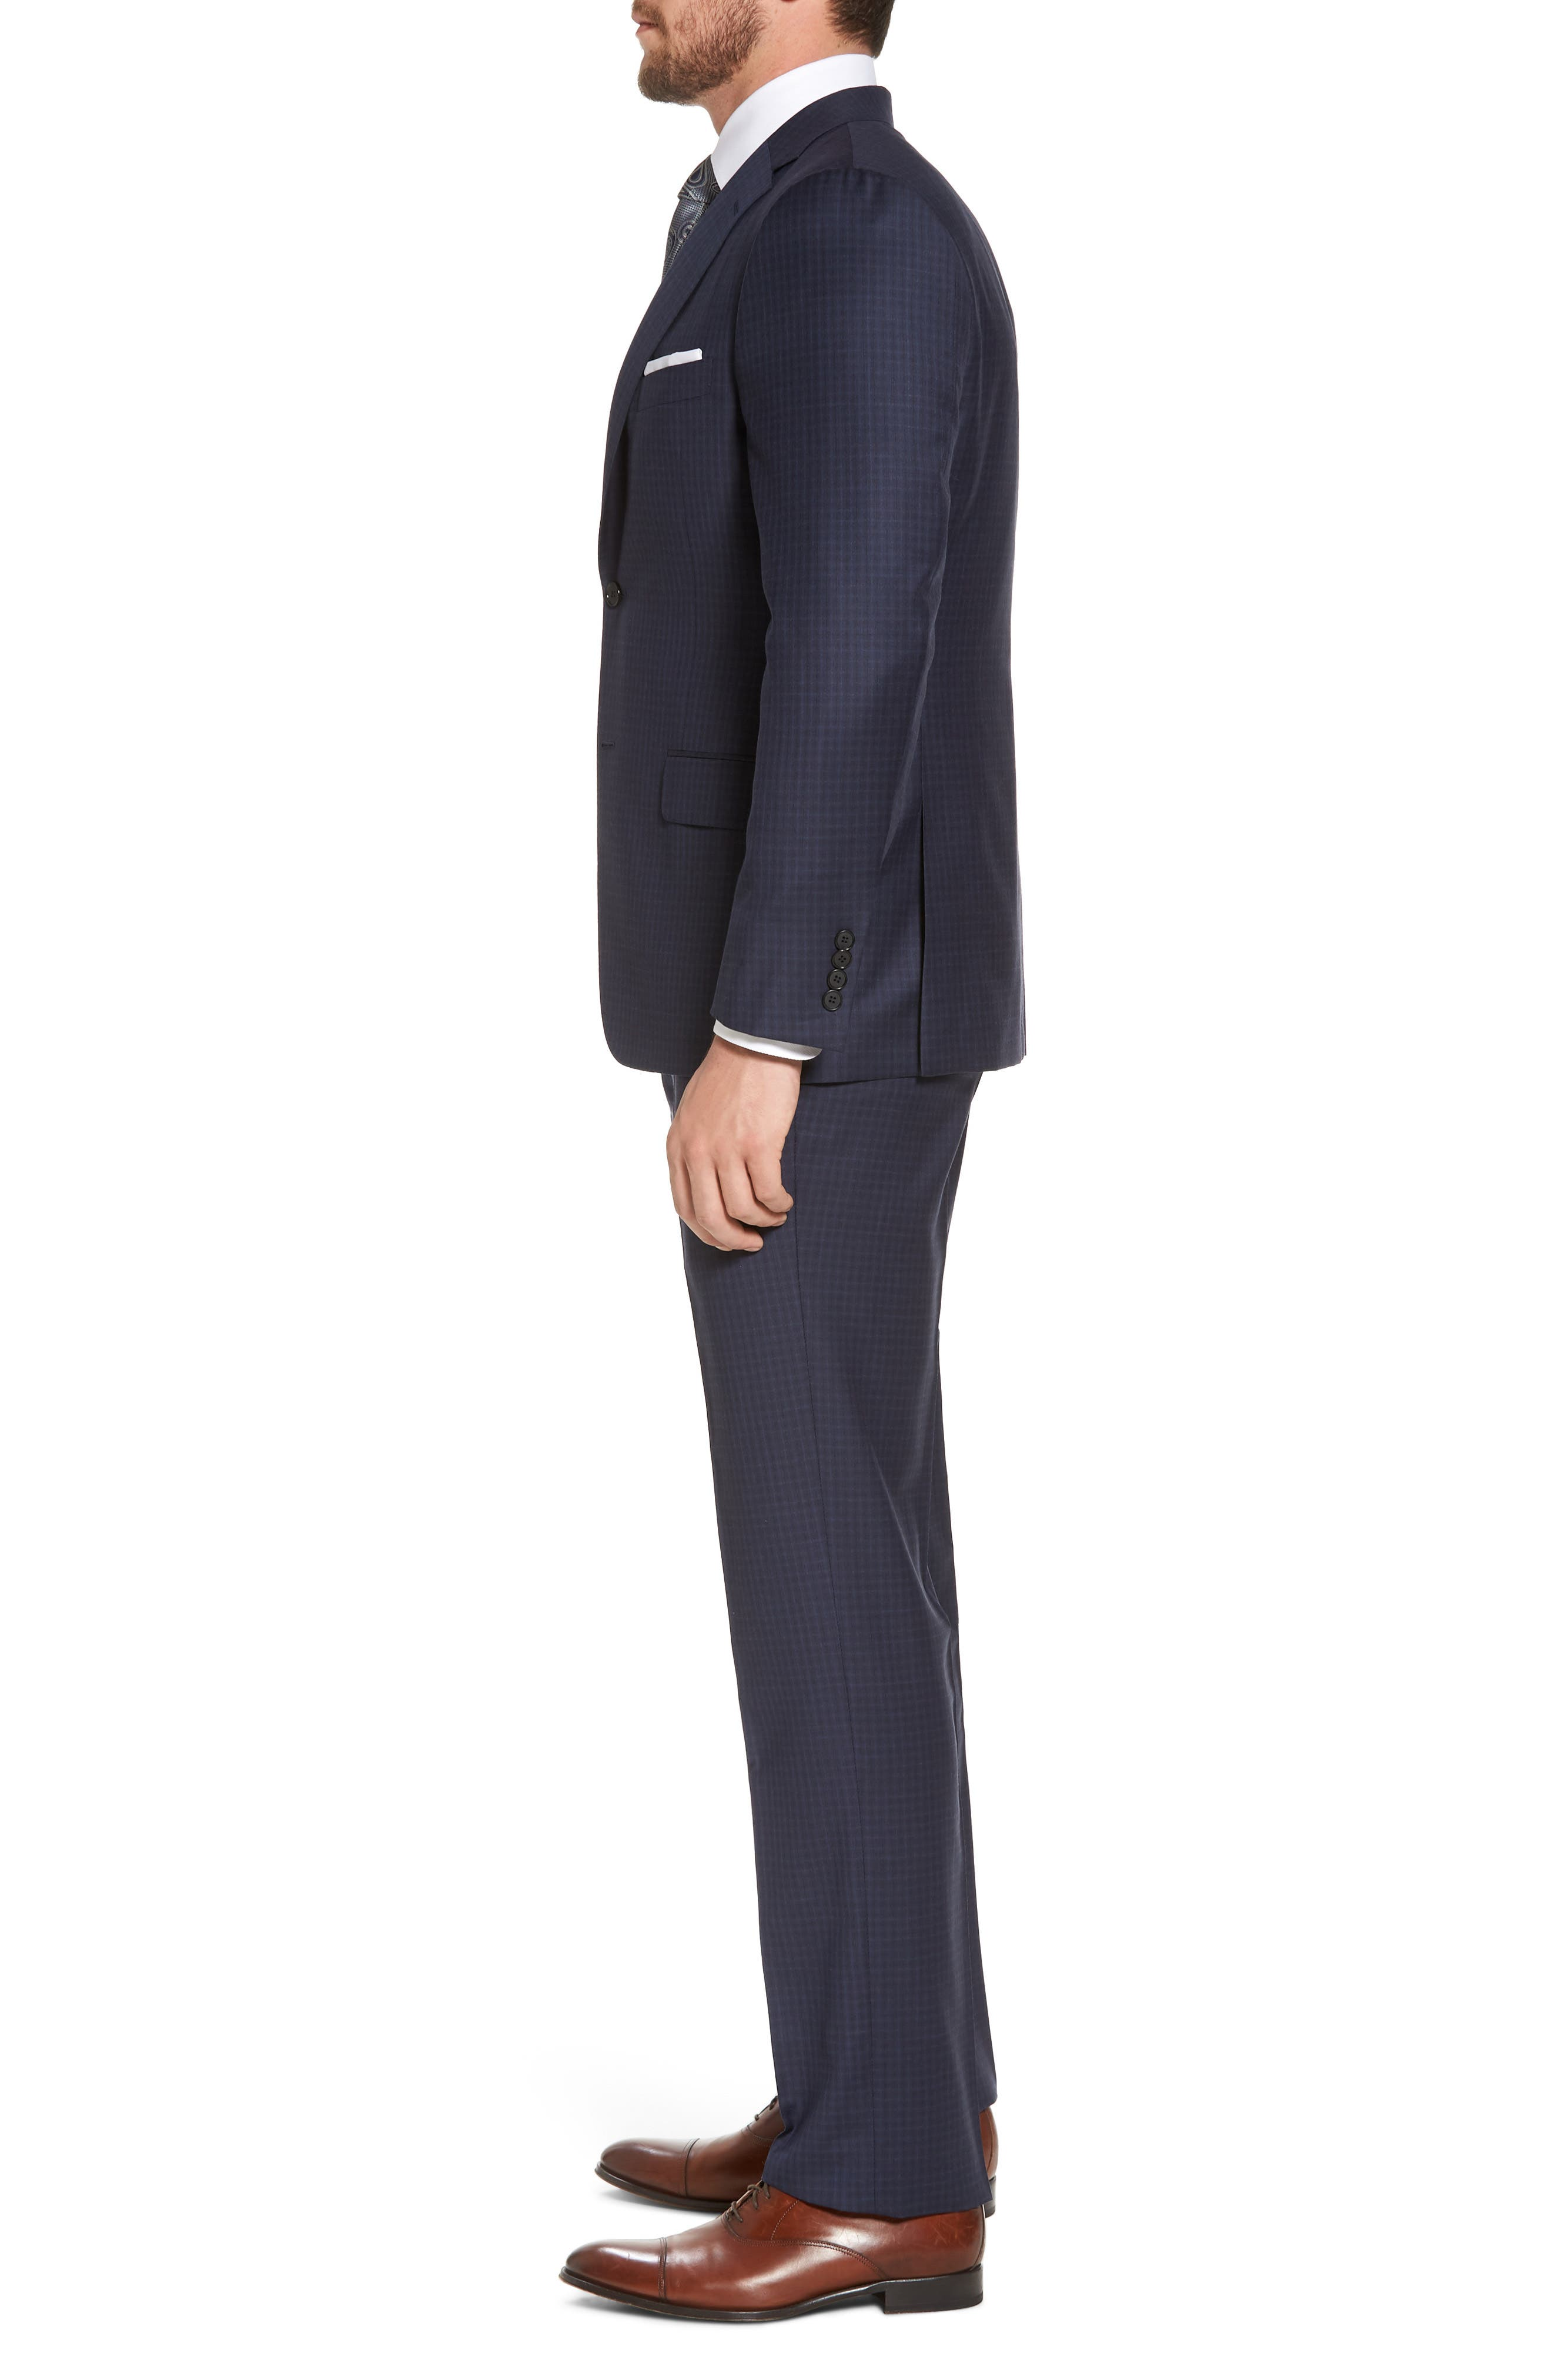 HICKEY FREEMAN,                             Classic B Fit Check Wool Suit,                             Alternate thumbnail 3, color,                             410